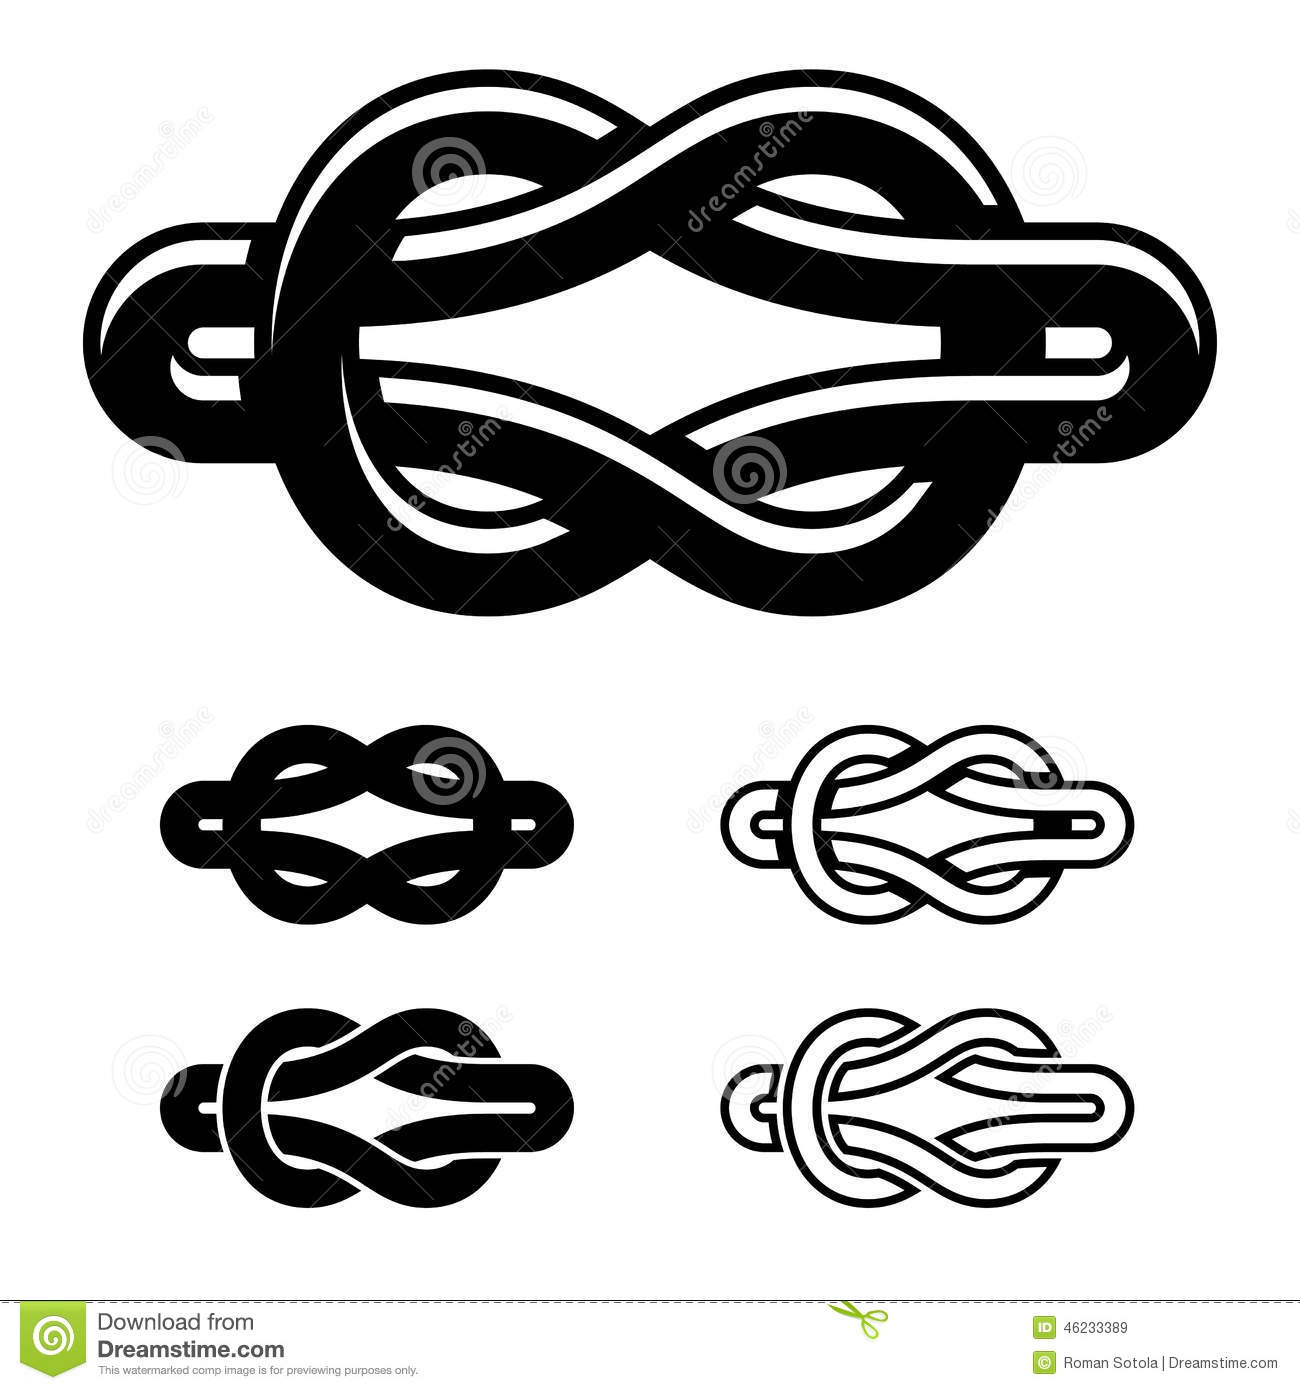 Unity Knot Black White Symbols Stock Vector Illustration Of Design